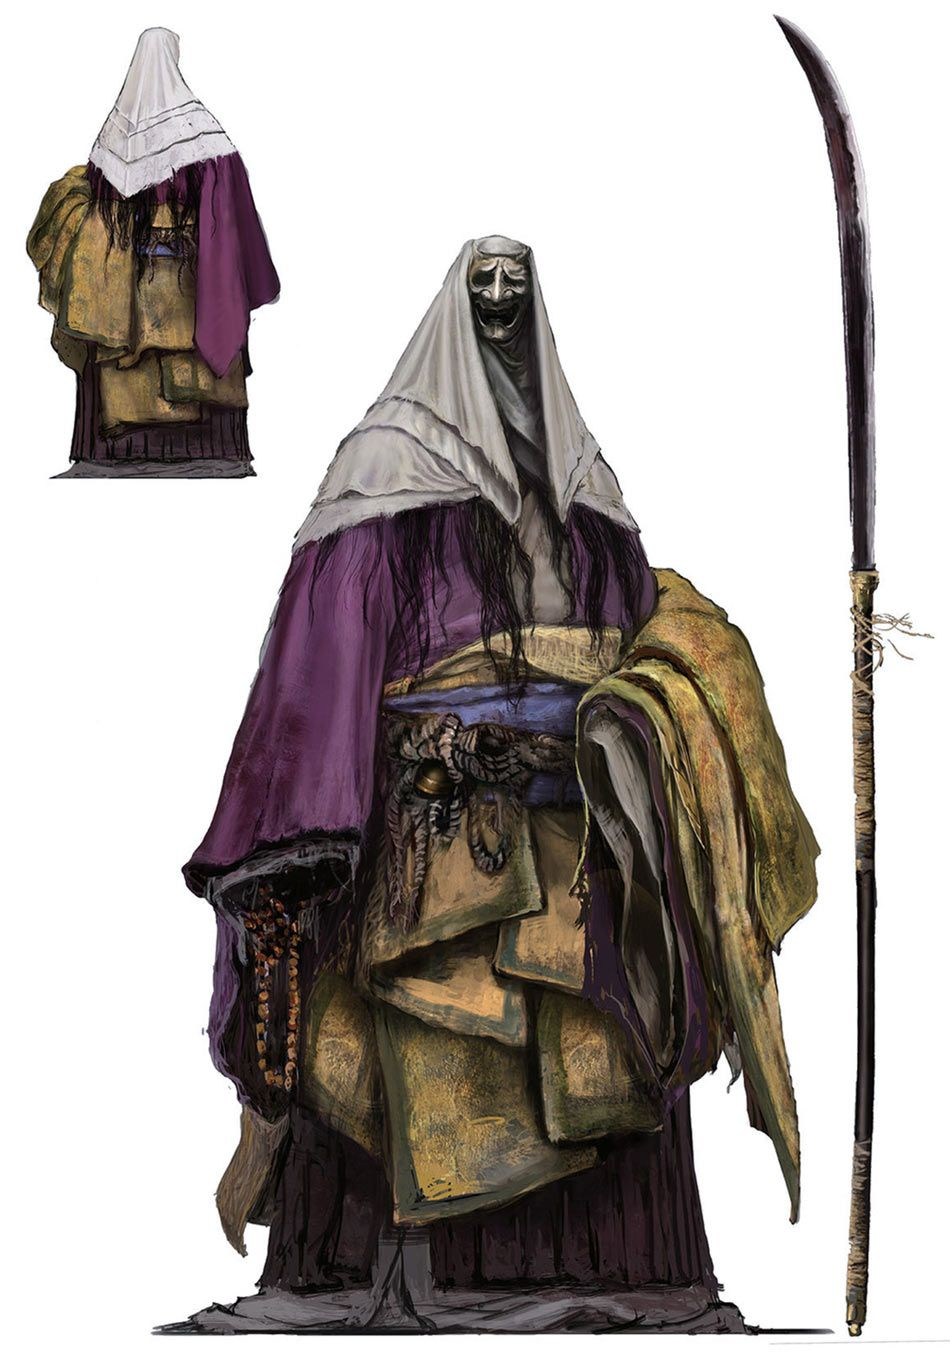 Corrupted Monk Concept Art from Sekiro Shadows Die Twice